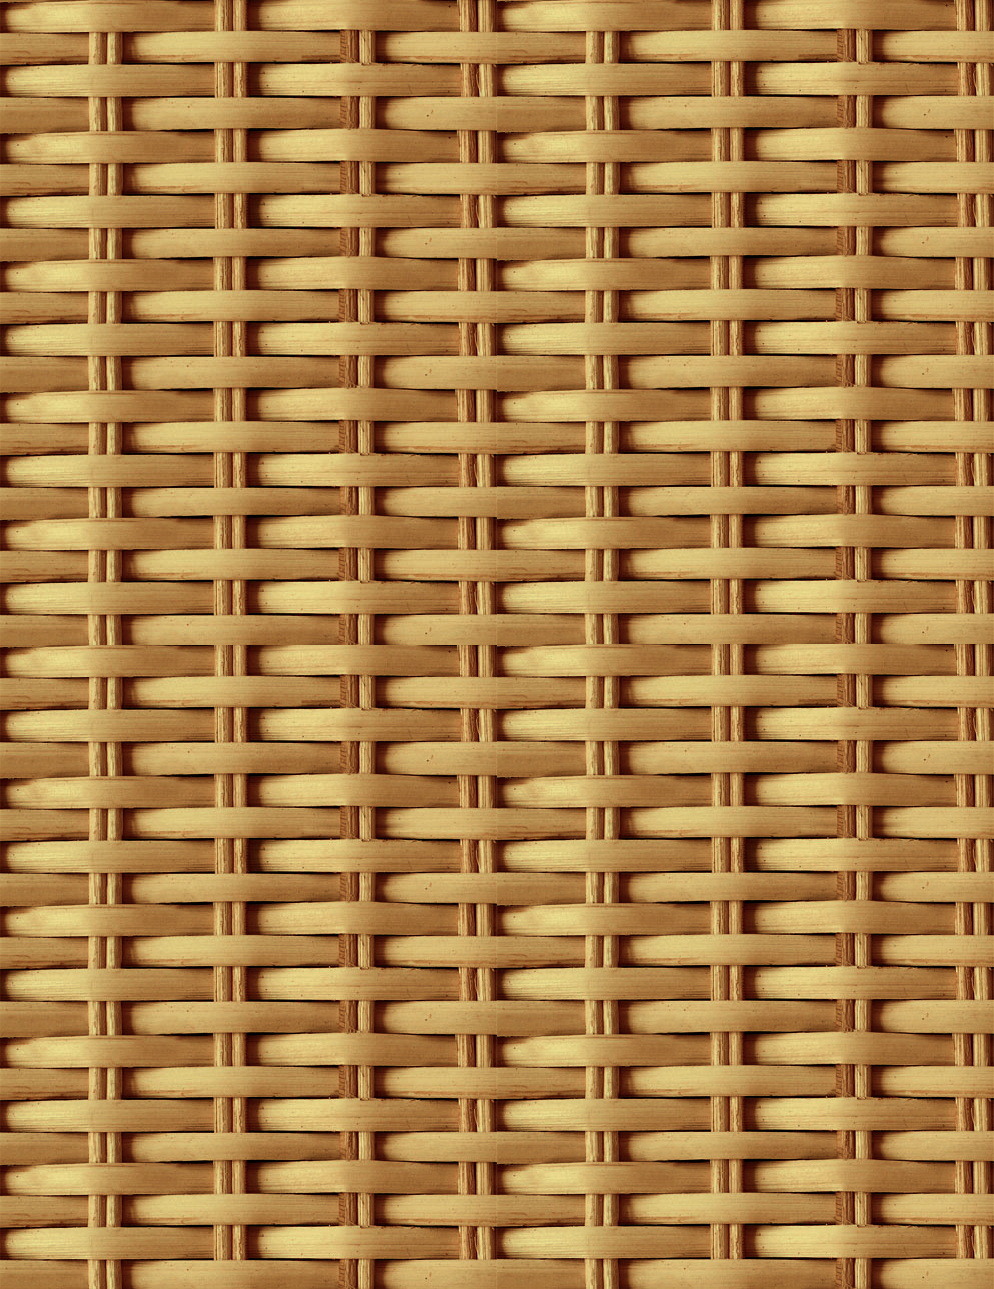 Rattan Sketchup Texture: Update New Seamless Awesome Texture